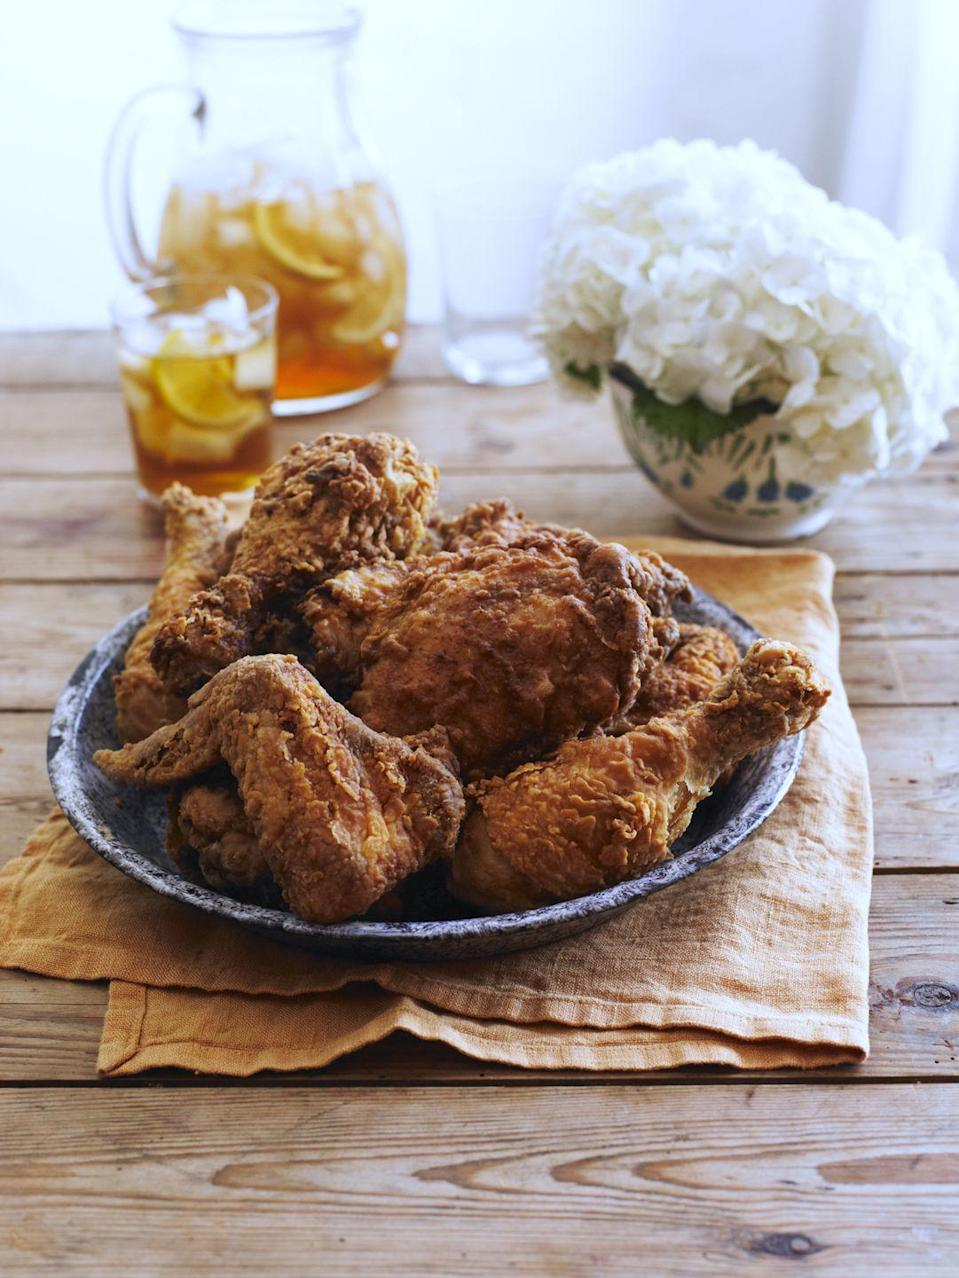 """<p>All good Southern cooks know that a buttermilk marinade, followed by a quick toss in seasoned flour, makes for crisp and tender fried chicken.</p><p><strong><a href=""""https://www.countryliving.com/food-drinks/recipes/a1450/spicy-southern-fried-chicken-3566/"""" rel=""""nofollow noopener"""" target=""""_blank"""" data-ylk=""""slk:Get the recipe"""" class=""""link rapid-noclick-resp"""">Get the recipe</a>.</strong></p>"""